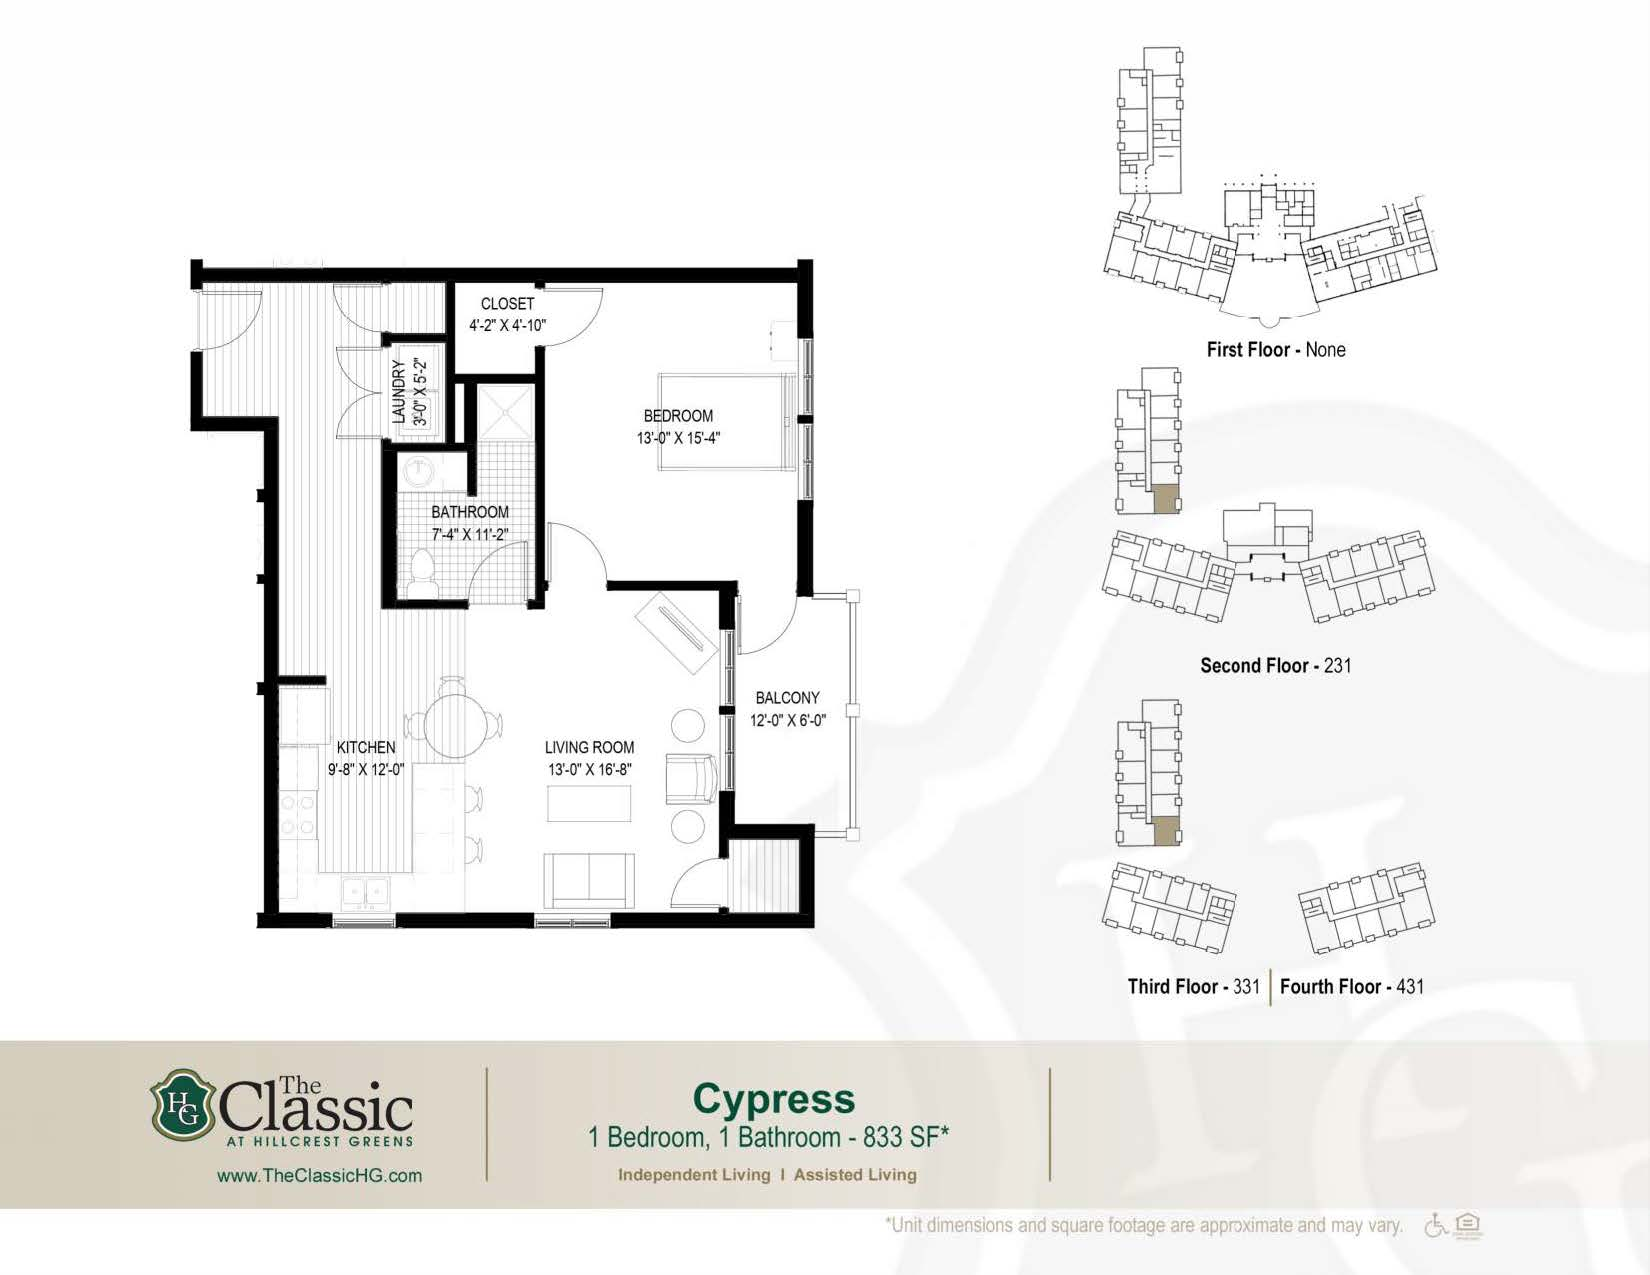 The Cypress floor plan.